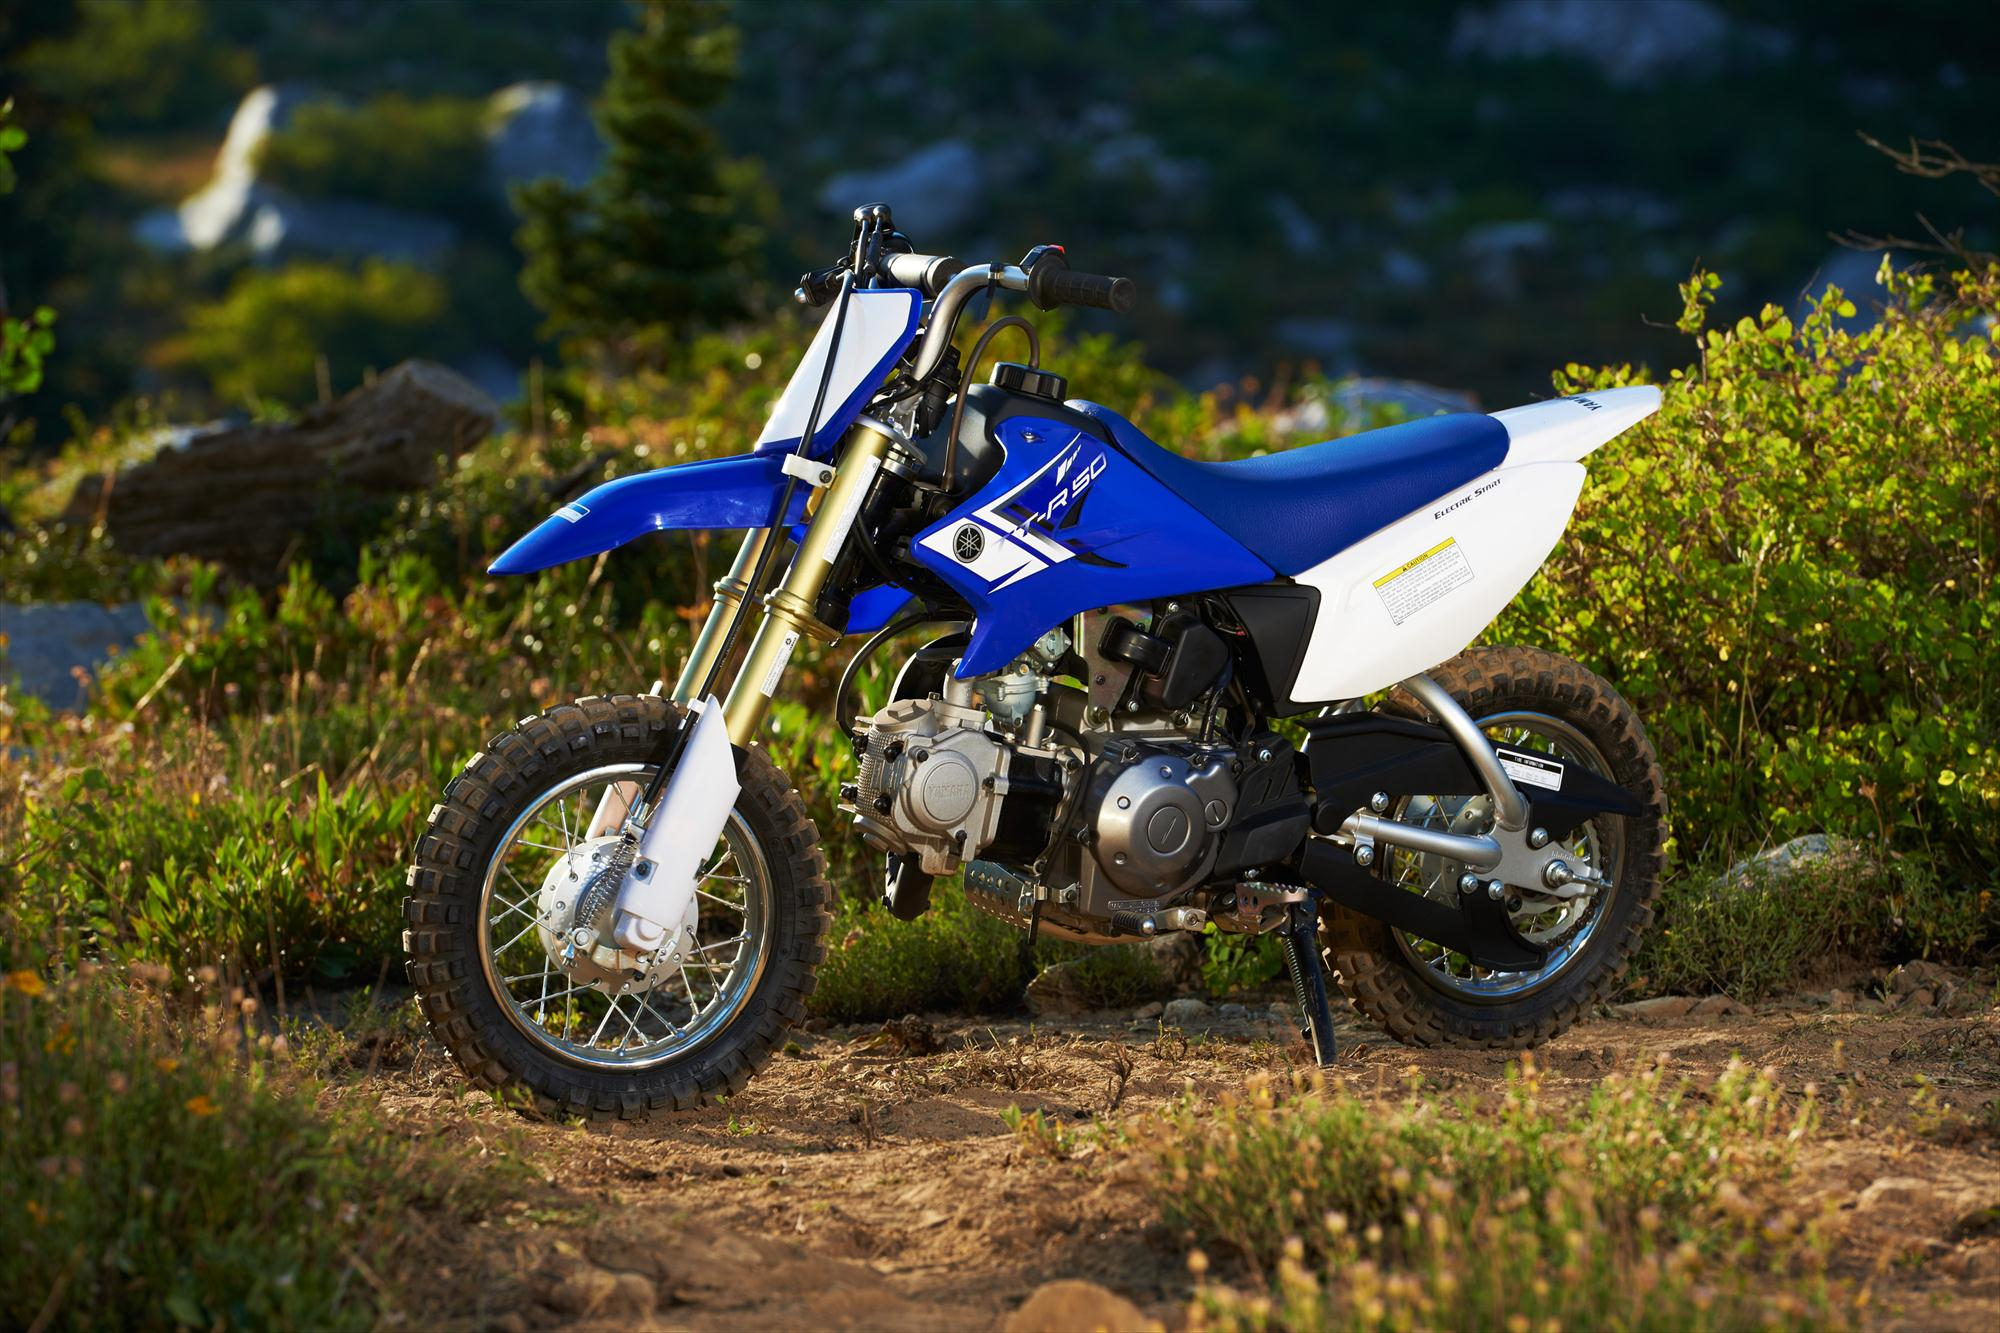 yamaha dirt bikes images - photo #26